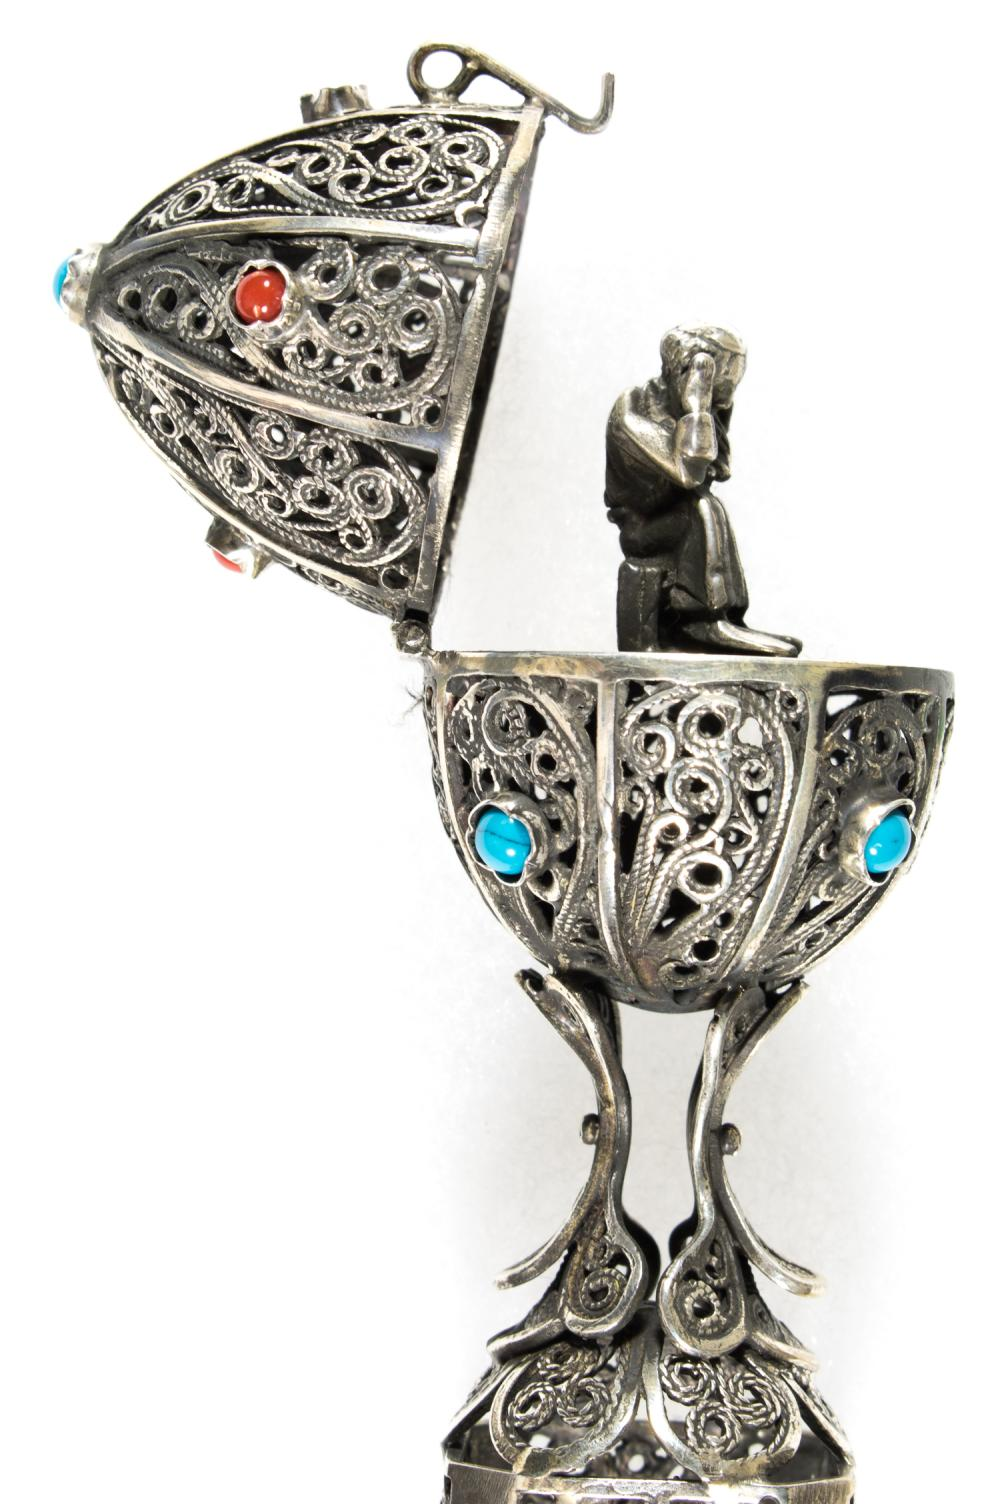 SILVER FABERGE-STYLE EGG